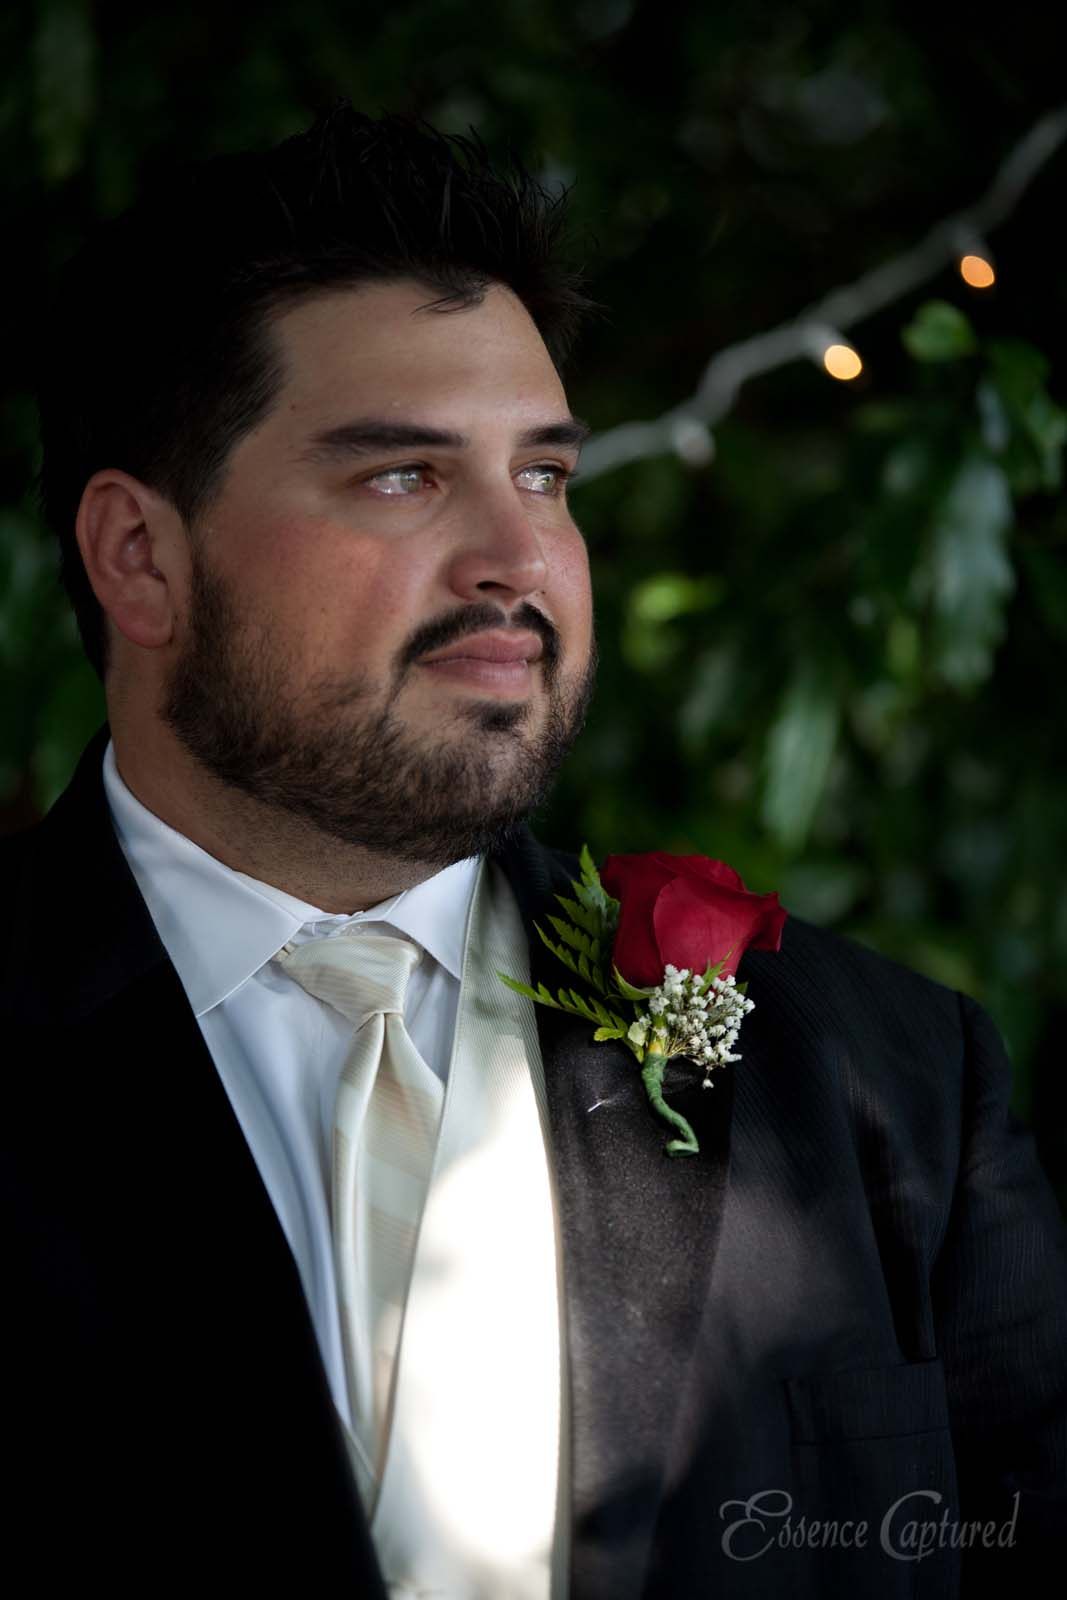 groom with teary eyes of joy at wedding